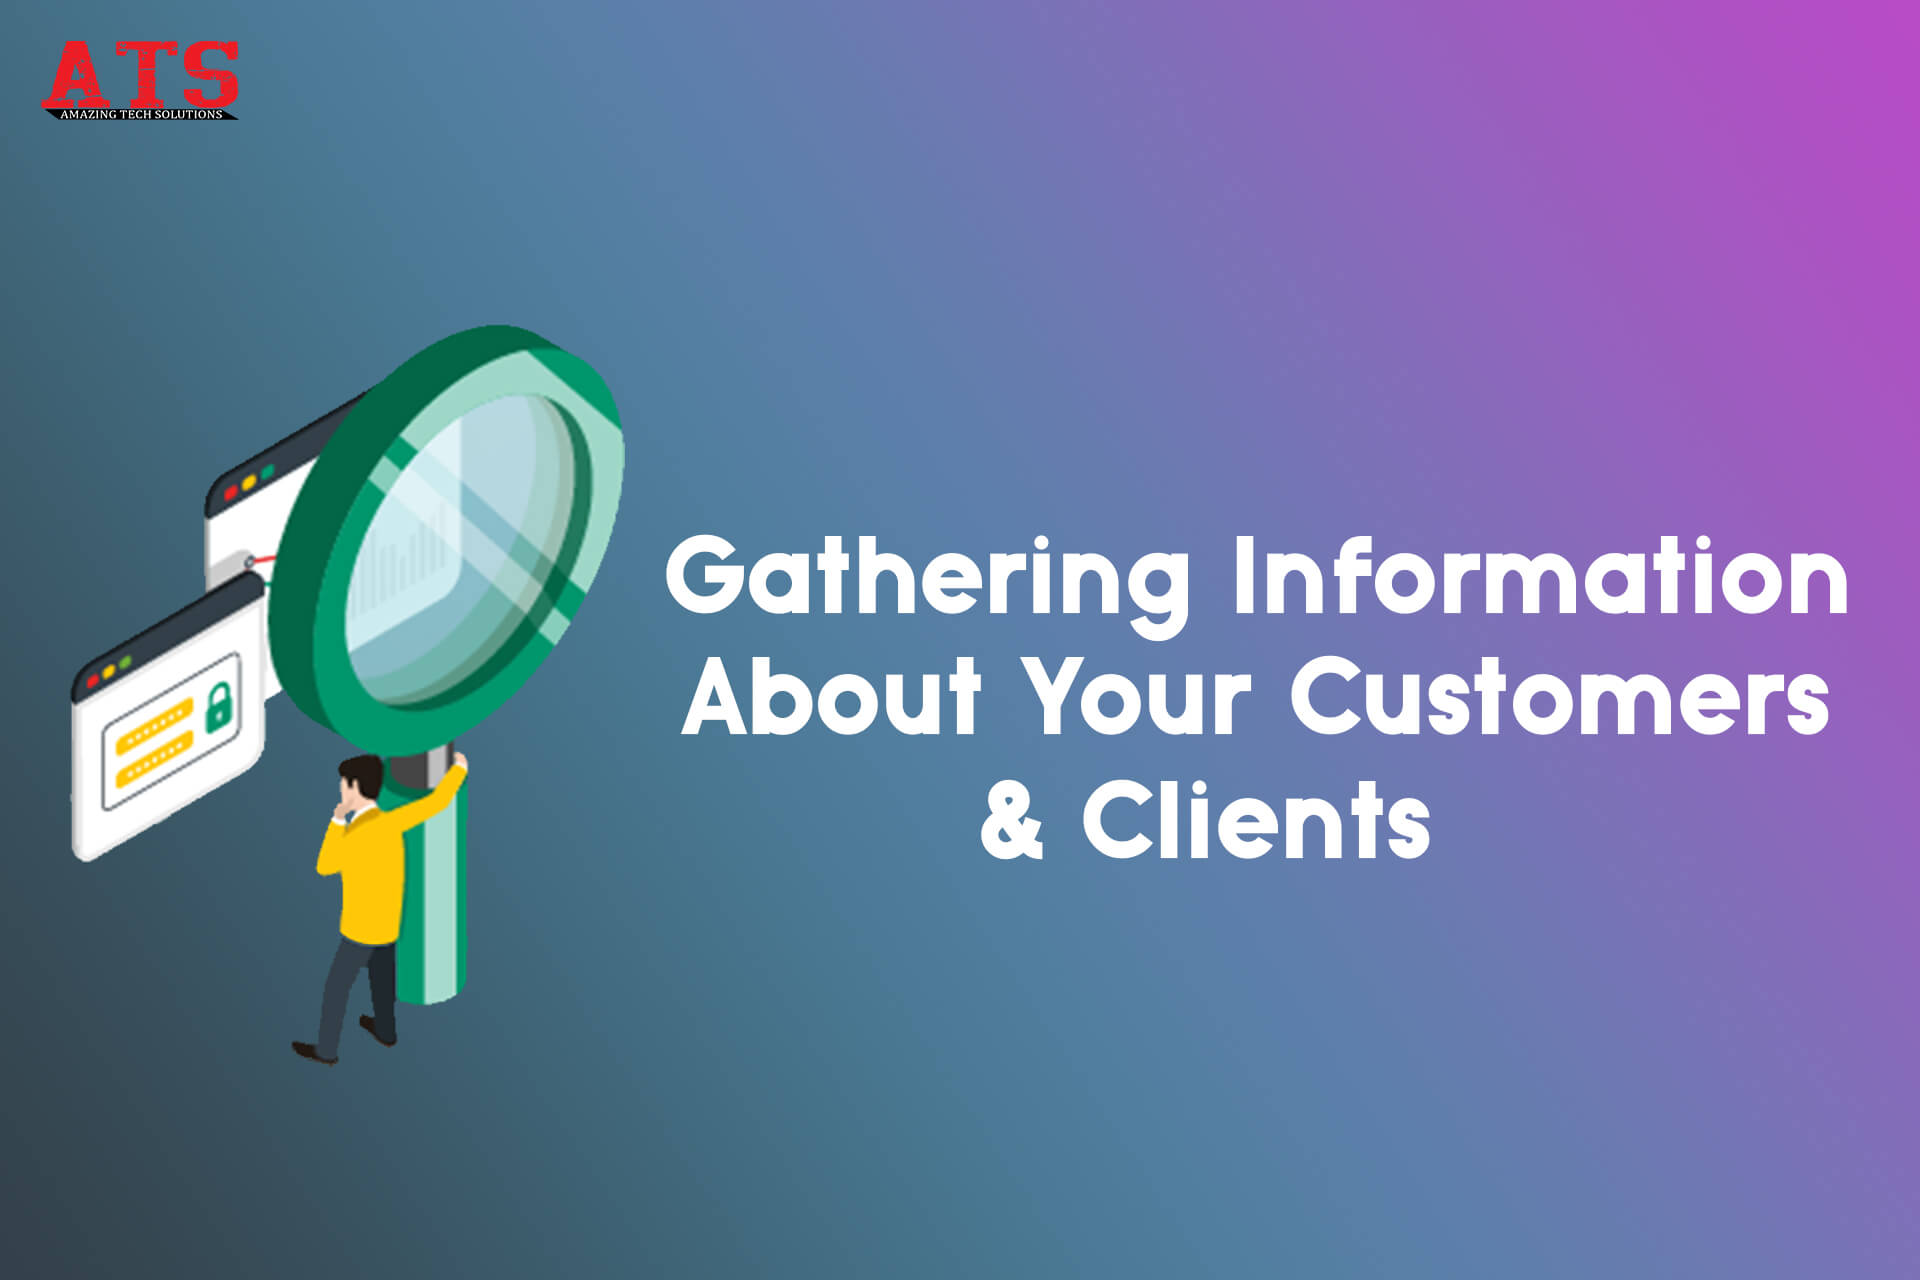 Gathering Information About Your Customers & Clients